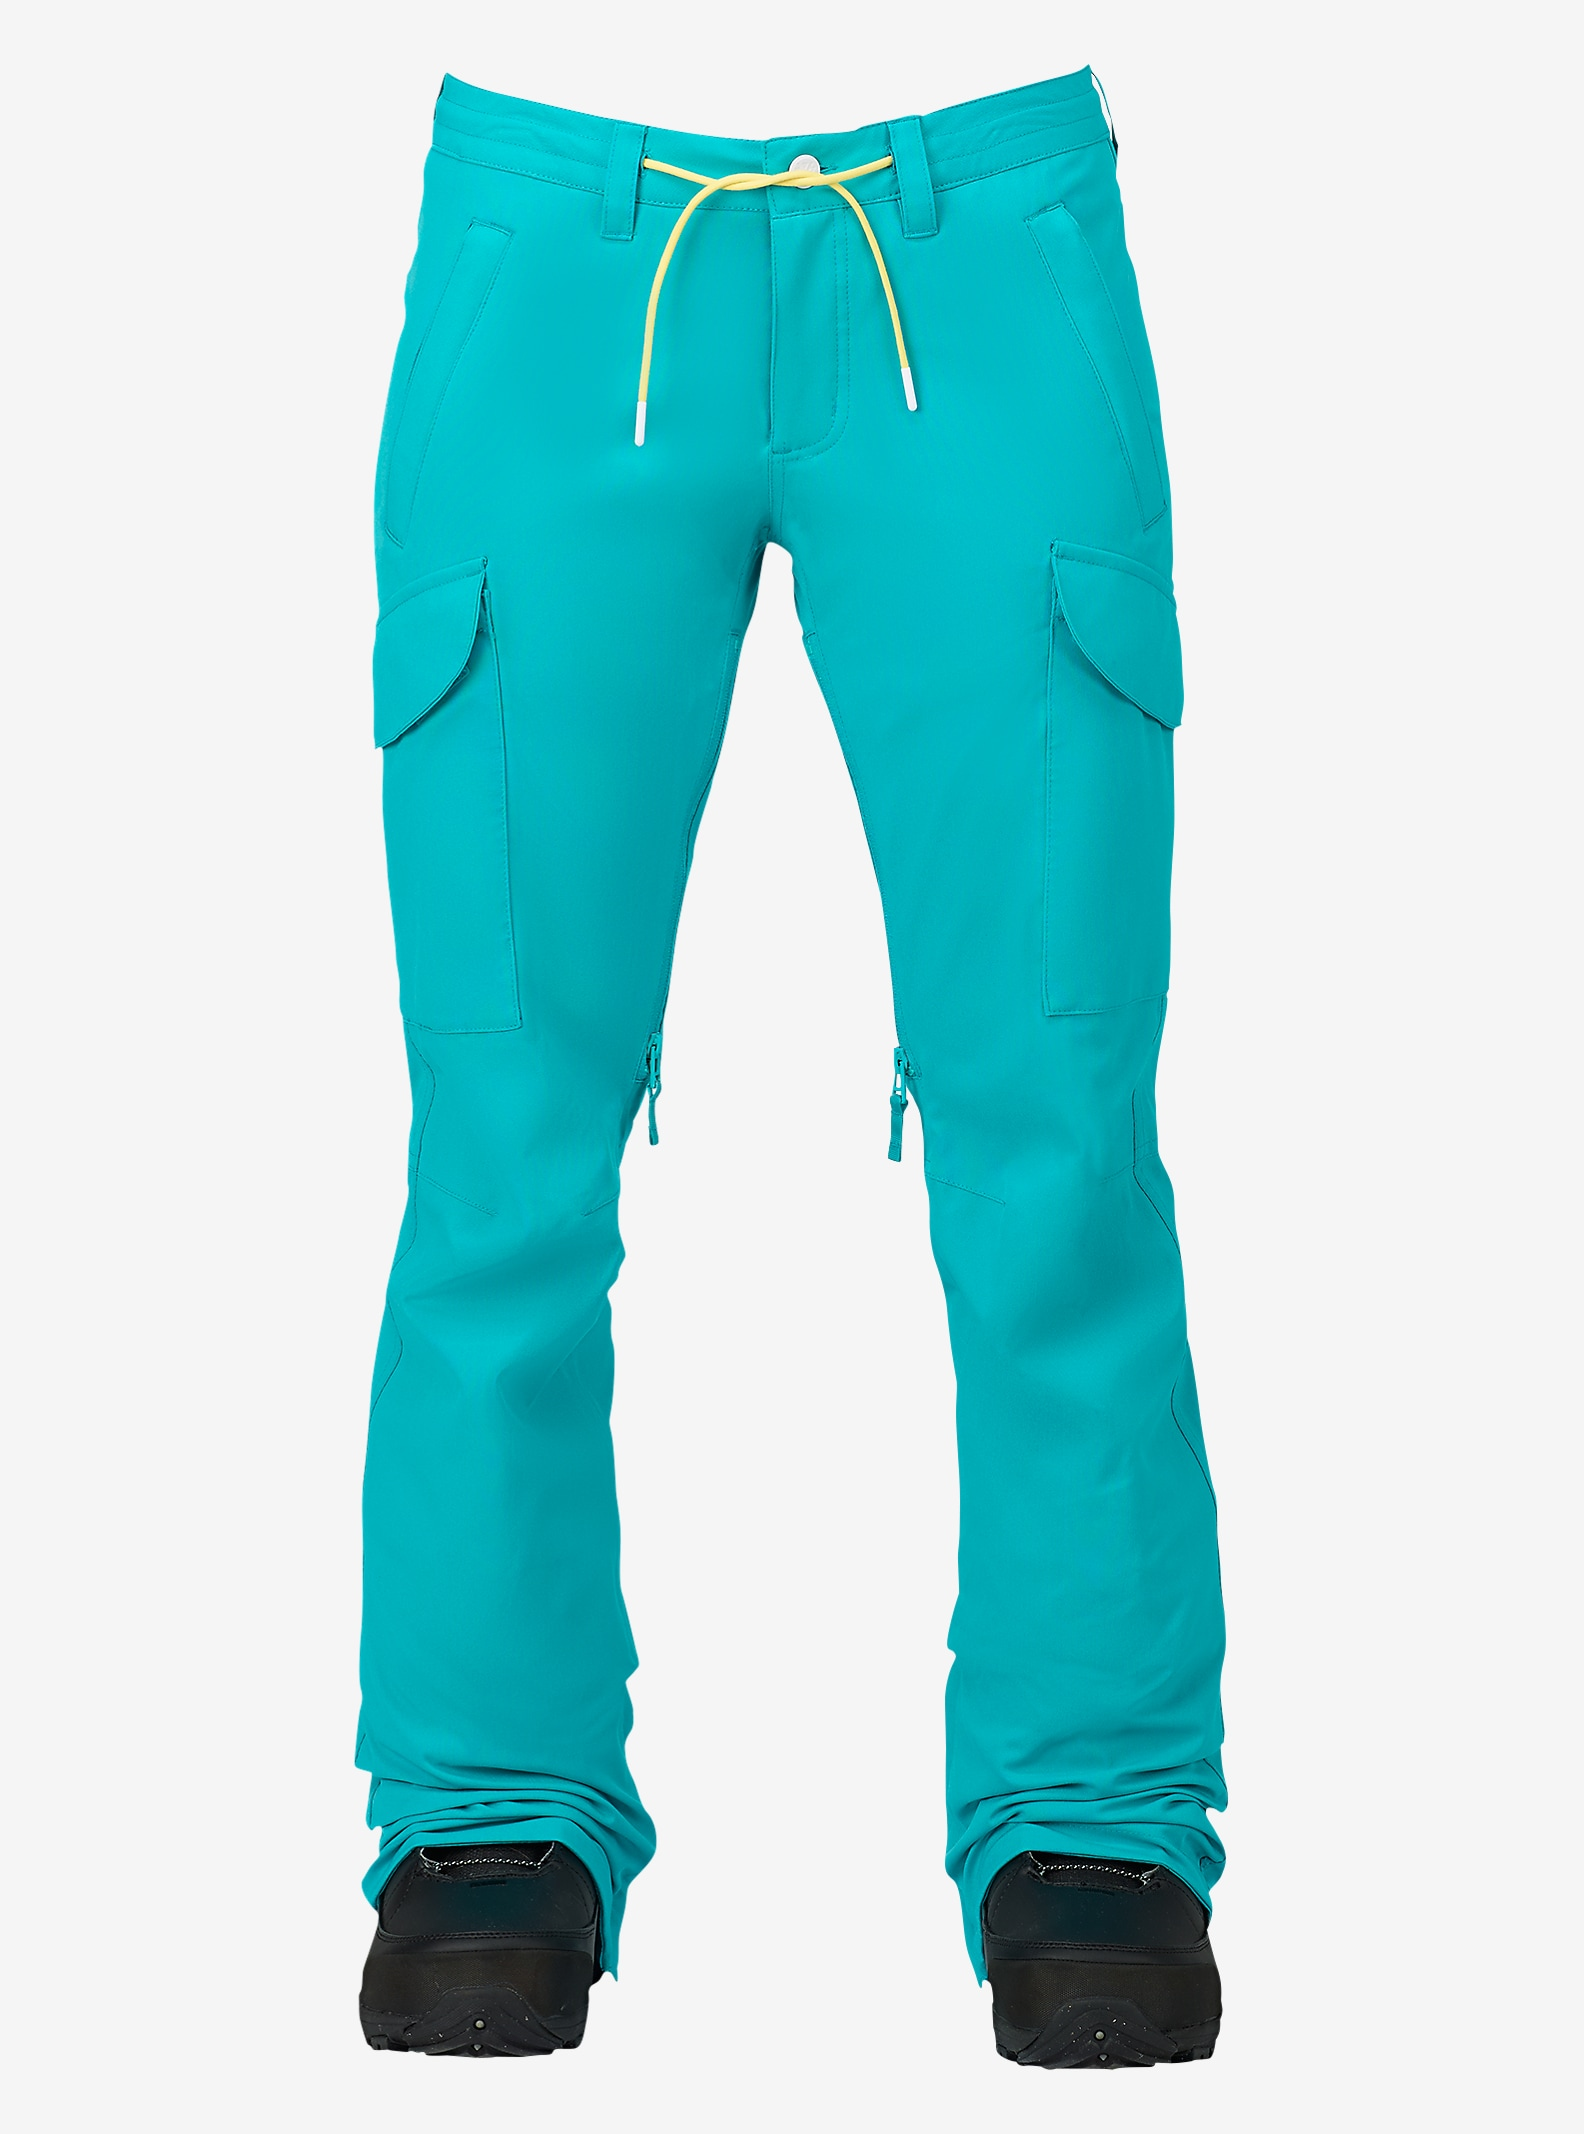 Burton TWC Nexterday Pant shown in Everglade